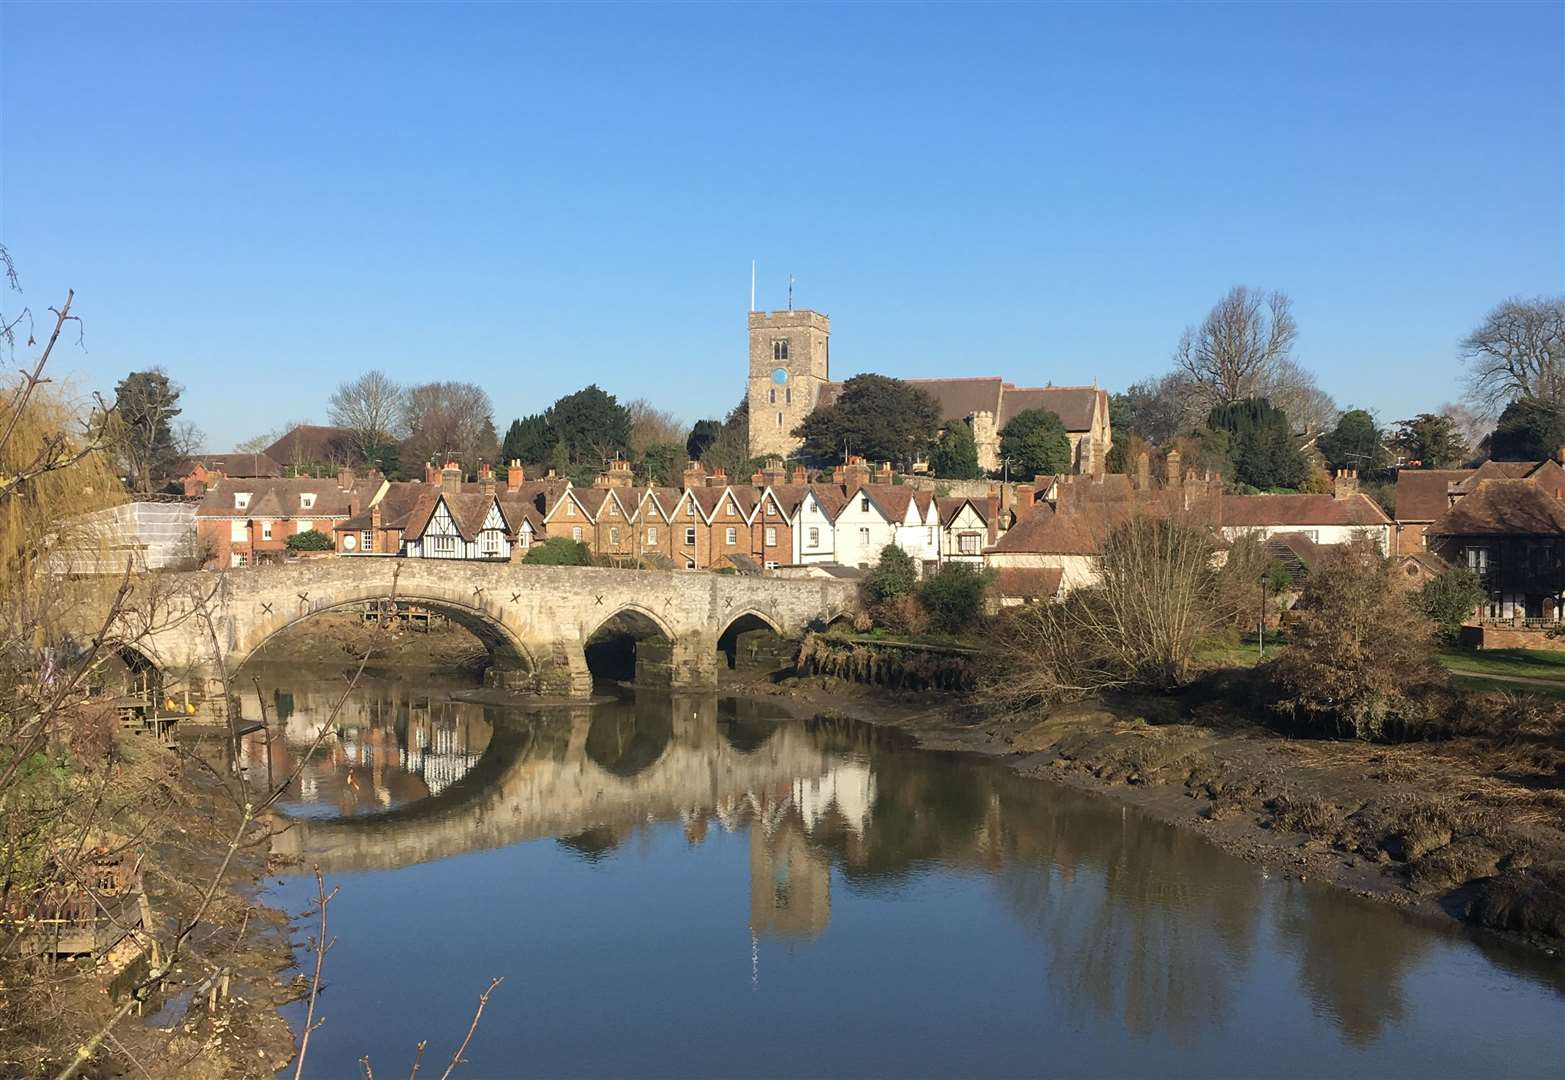 Stunning views in Aylesford. Picture: Luke May